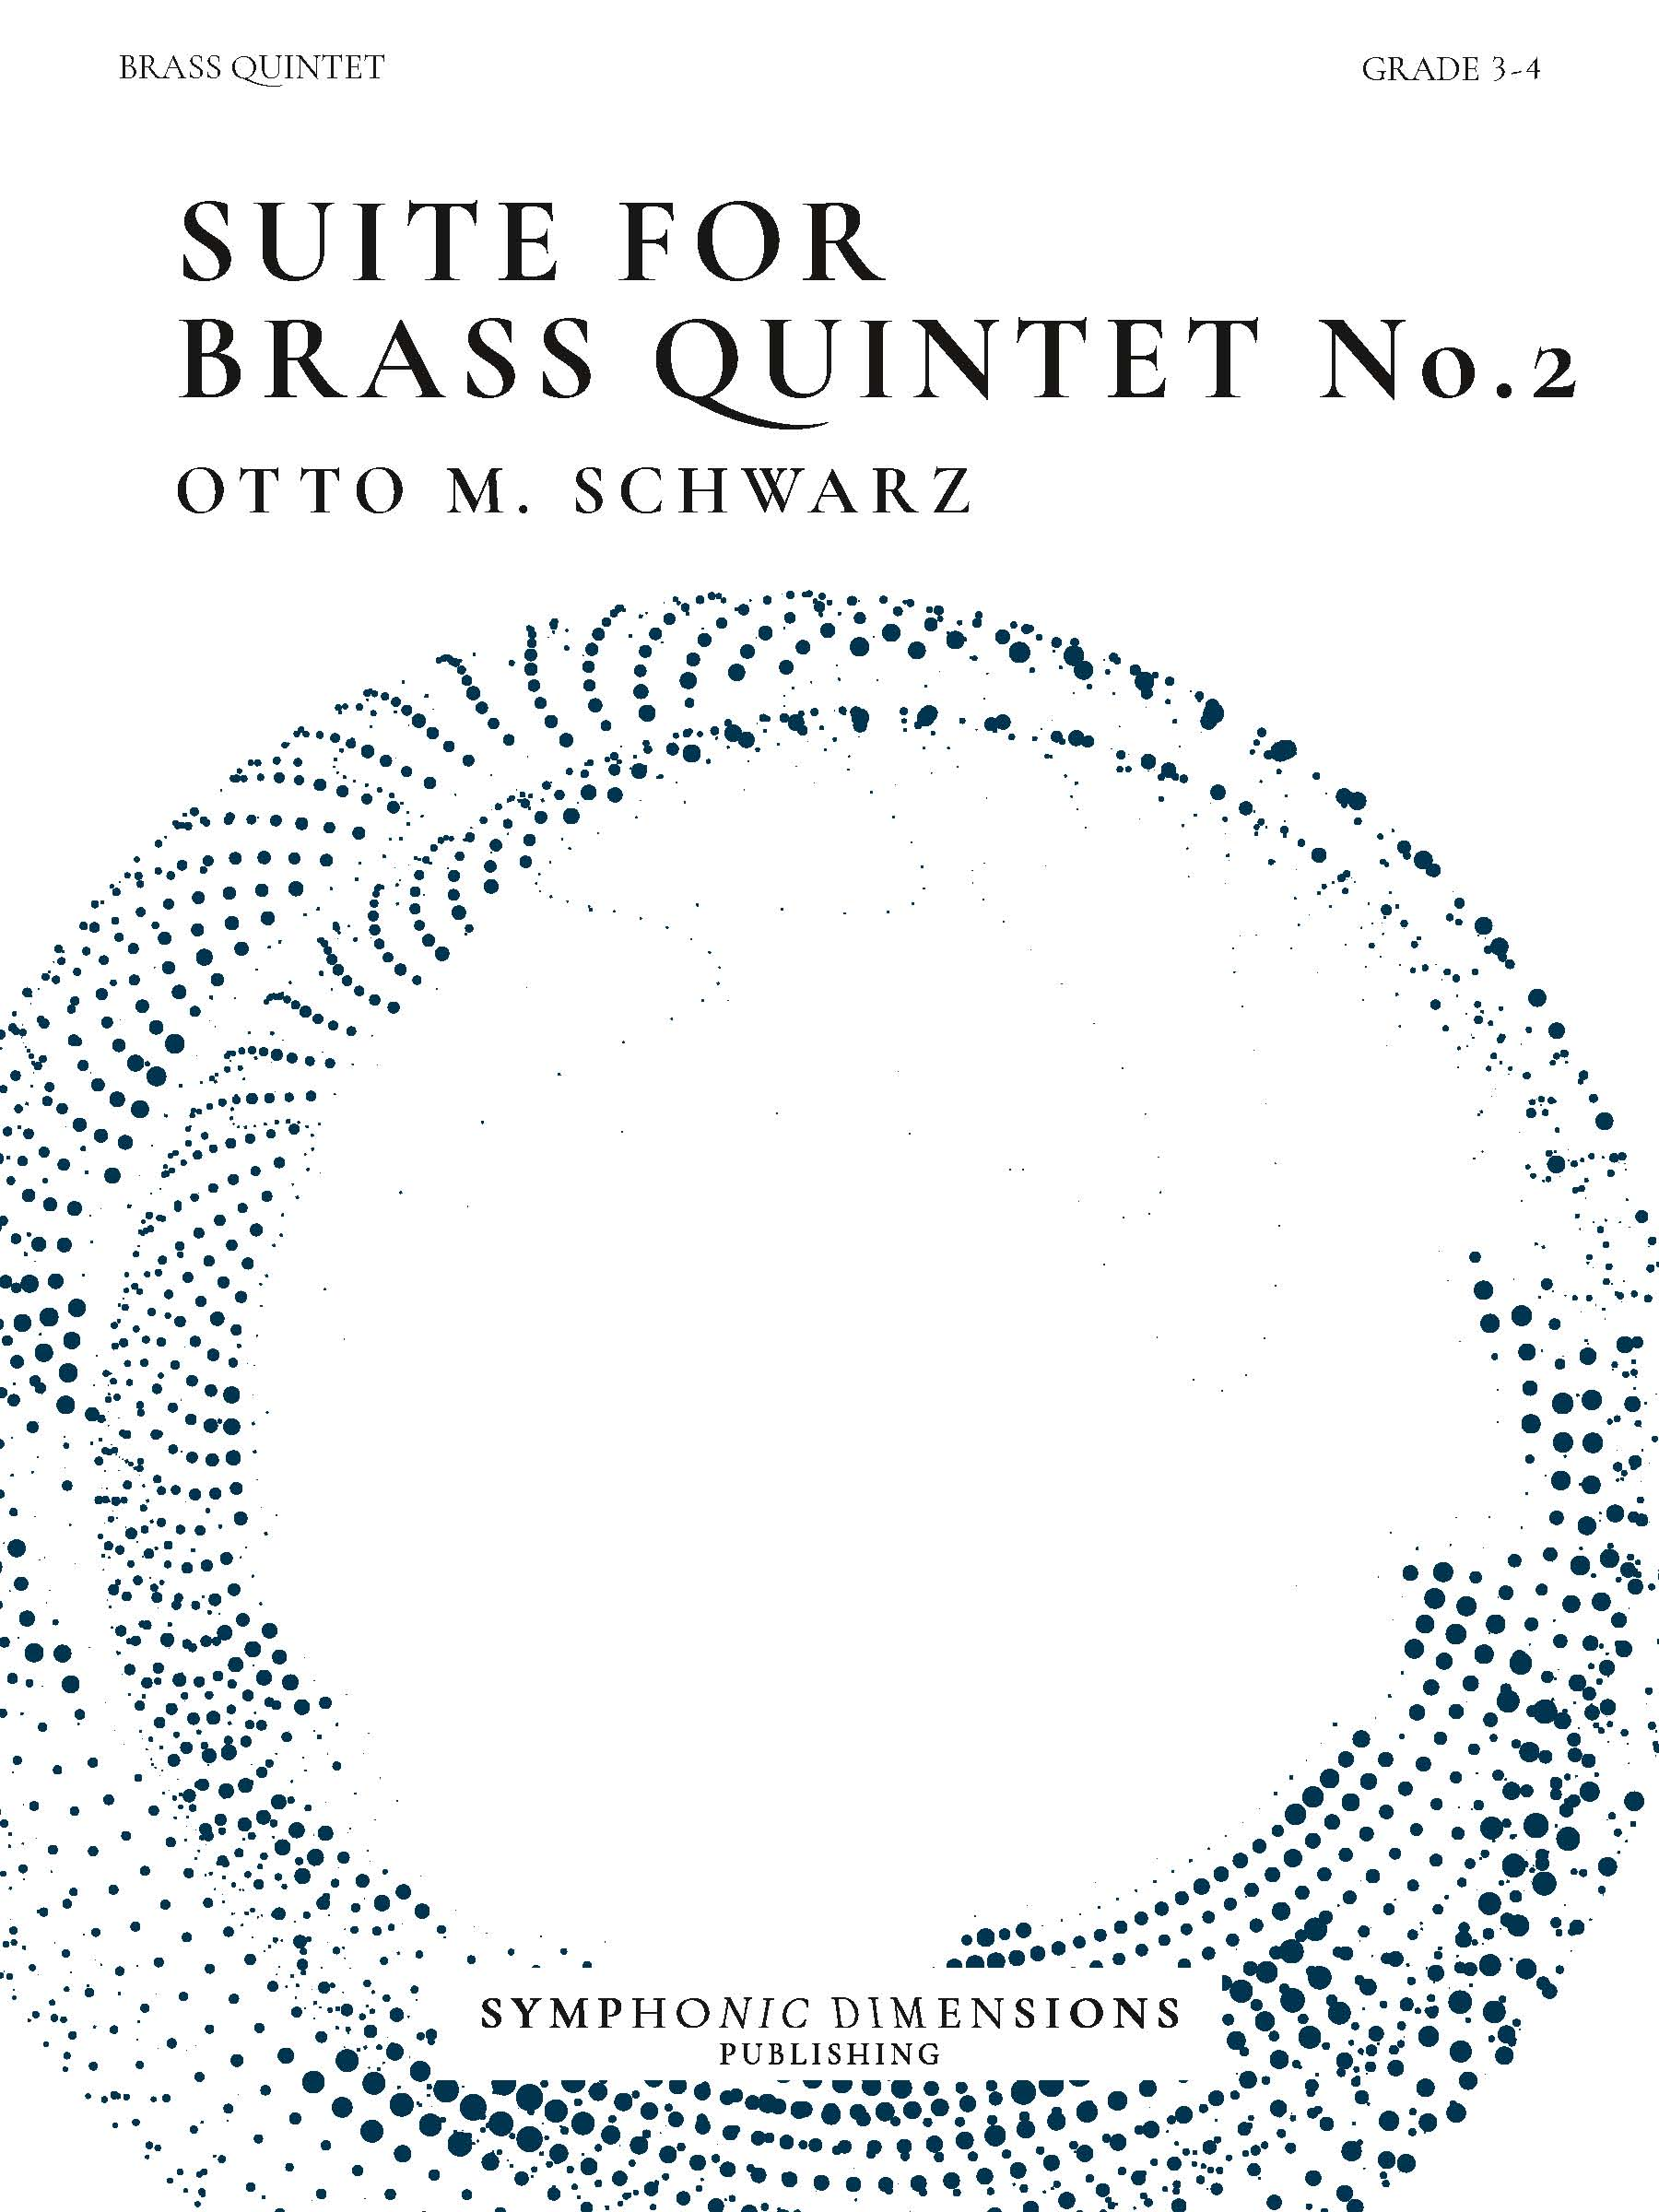 Otto M. Schwarz: Suite for Brass Quintet No. 2: Brass Ensemble: Score and Parts